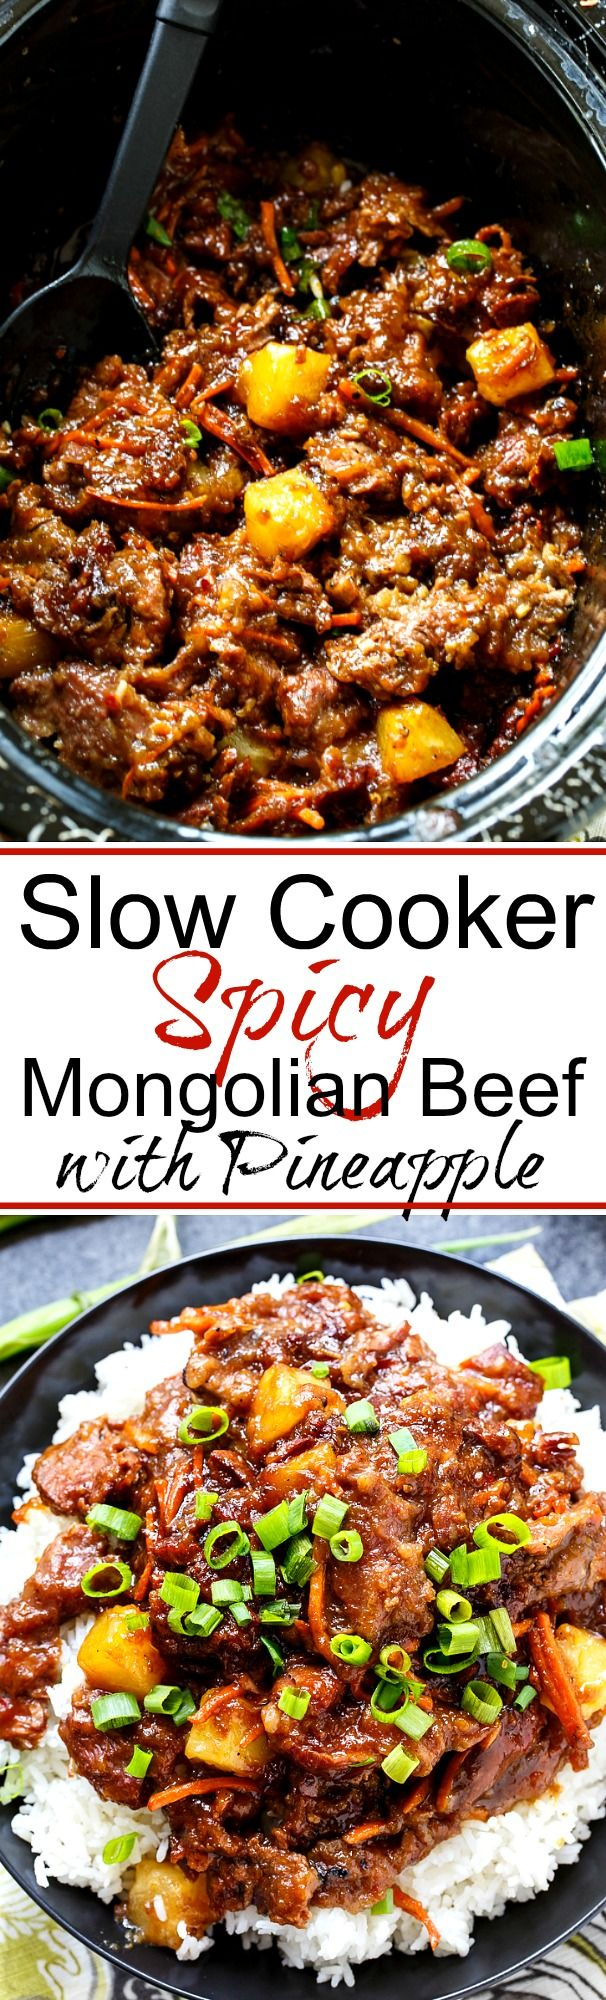 Slow Cooker Spicy Mongolian Beef with Pineapple                                                                                                                                                                                 More